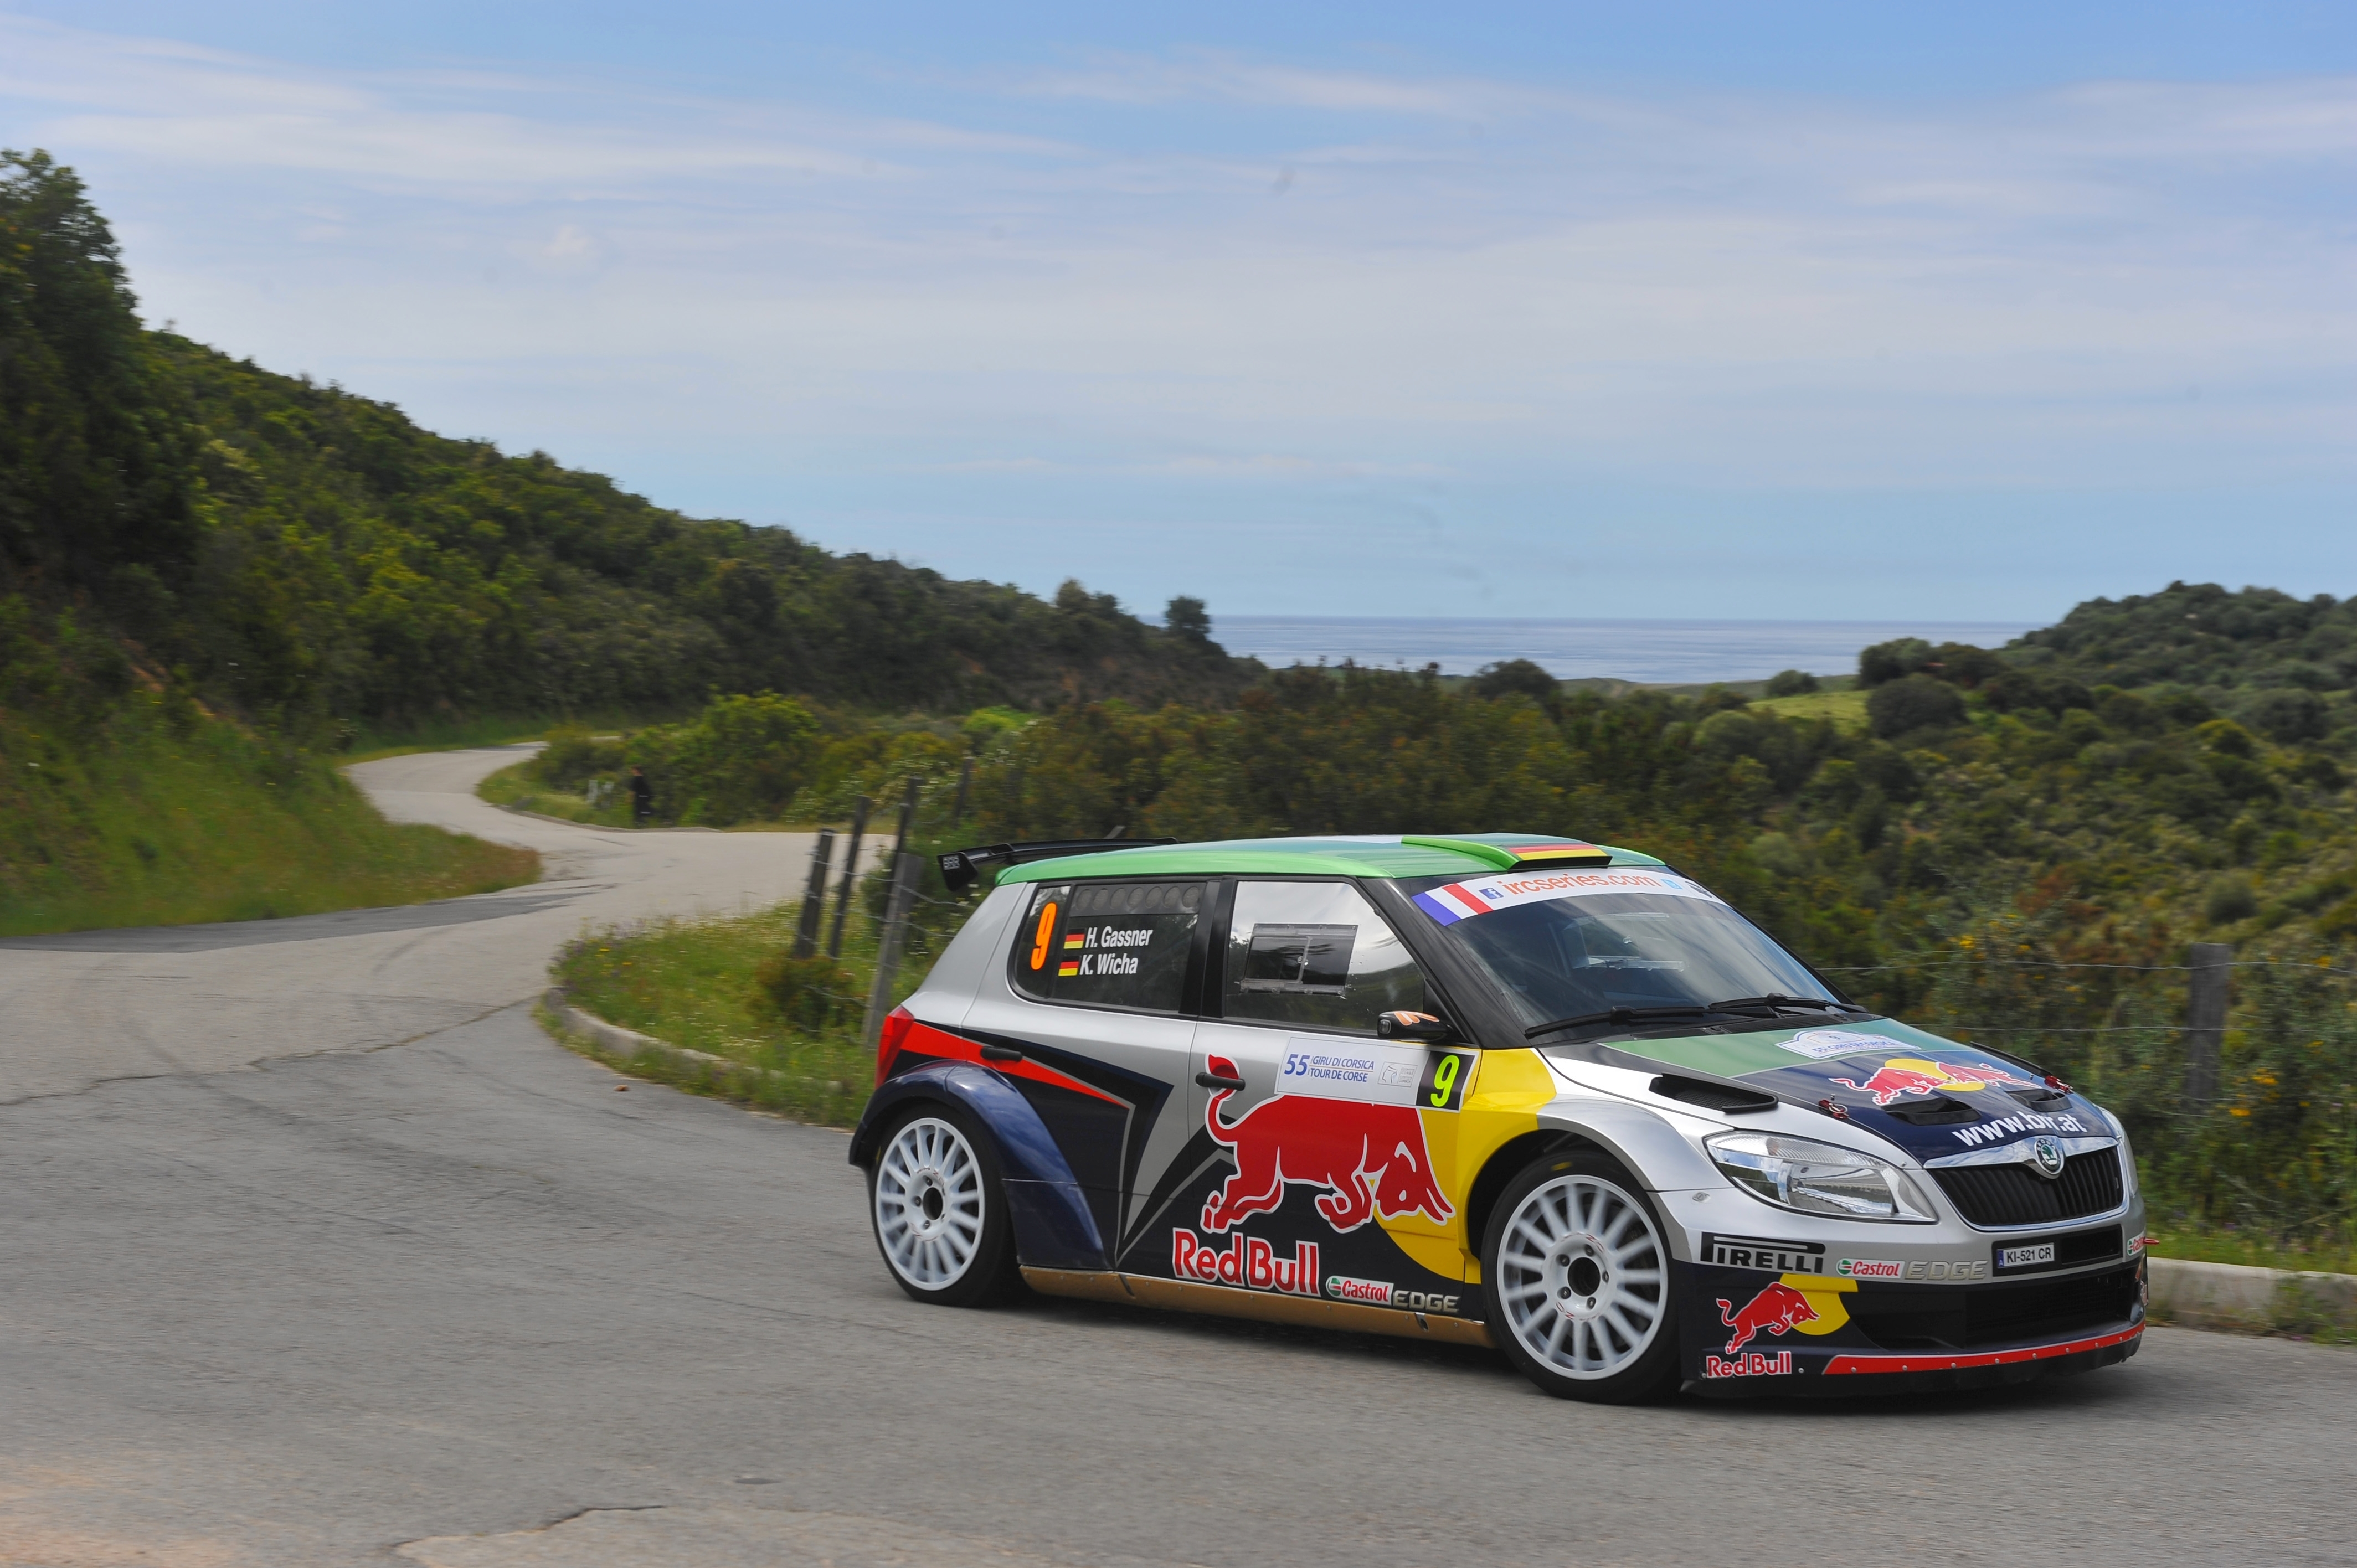 high quality photo of skoda fabia picture of wrc rally. Black Bedroom Furniture Sets. Home Design Ideas